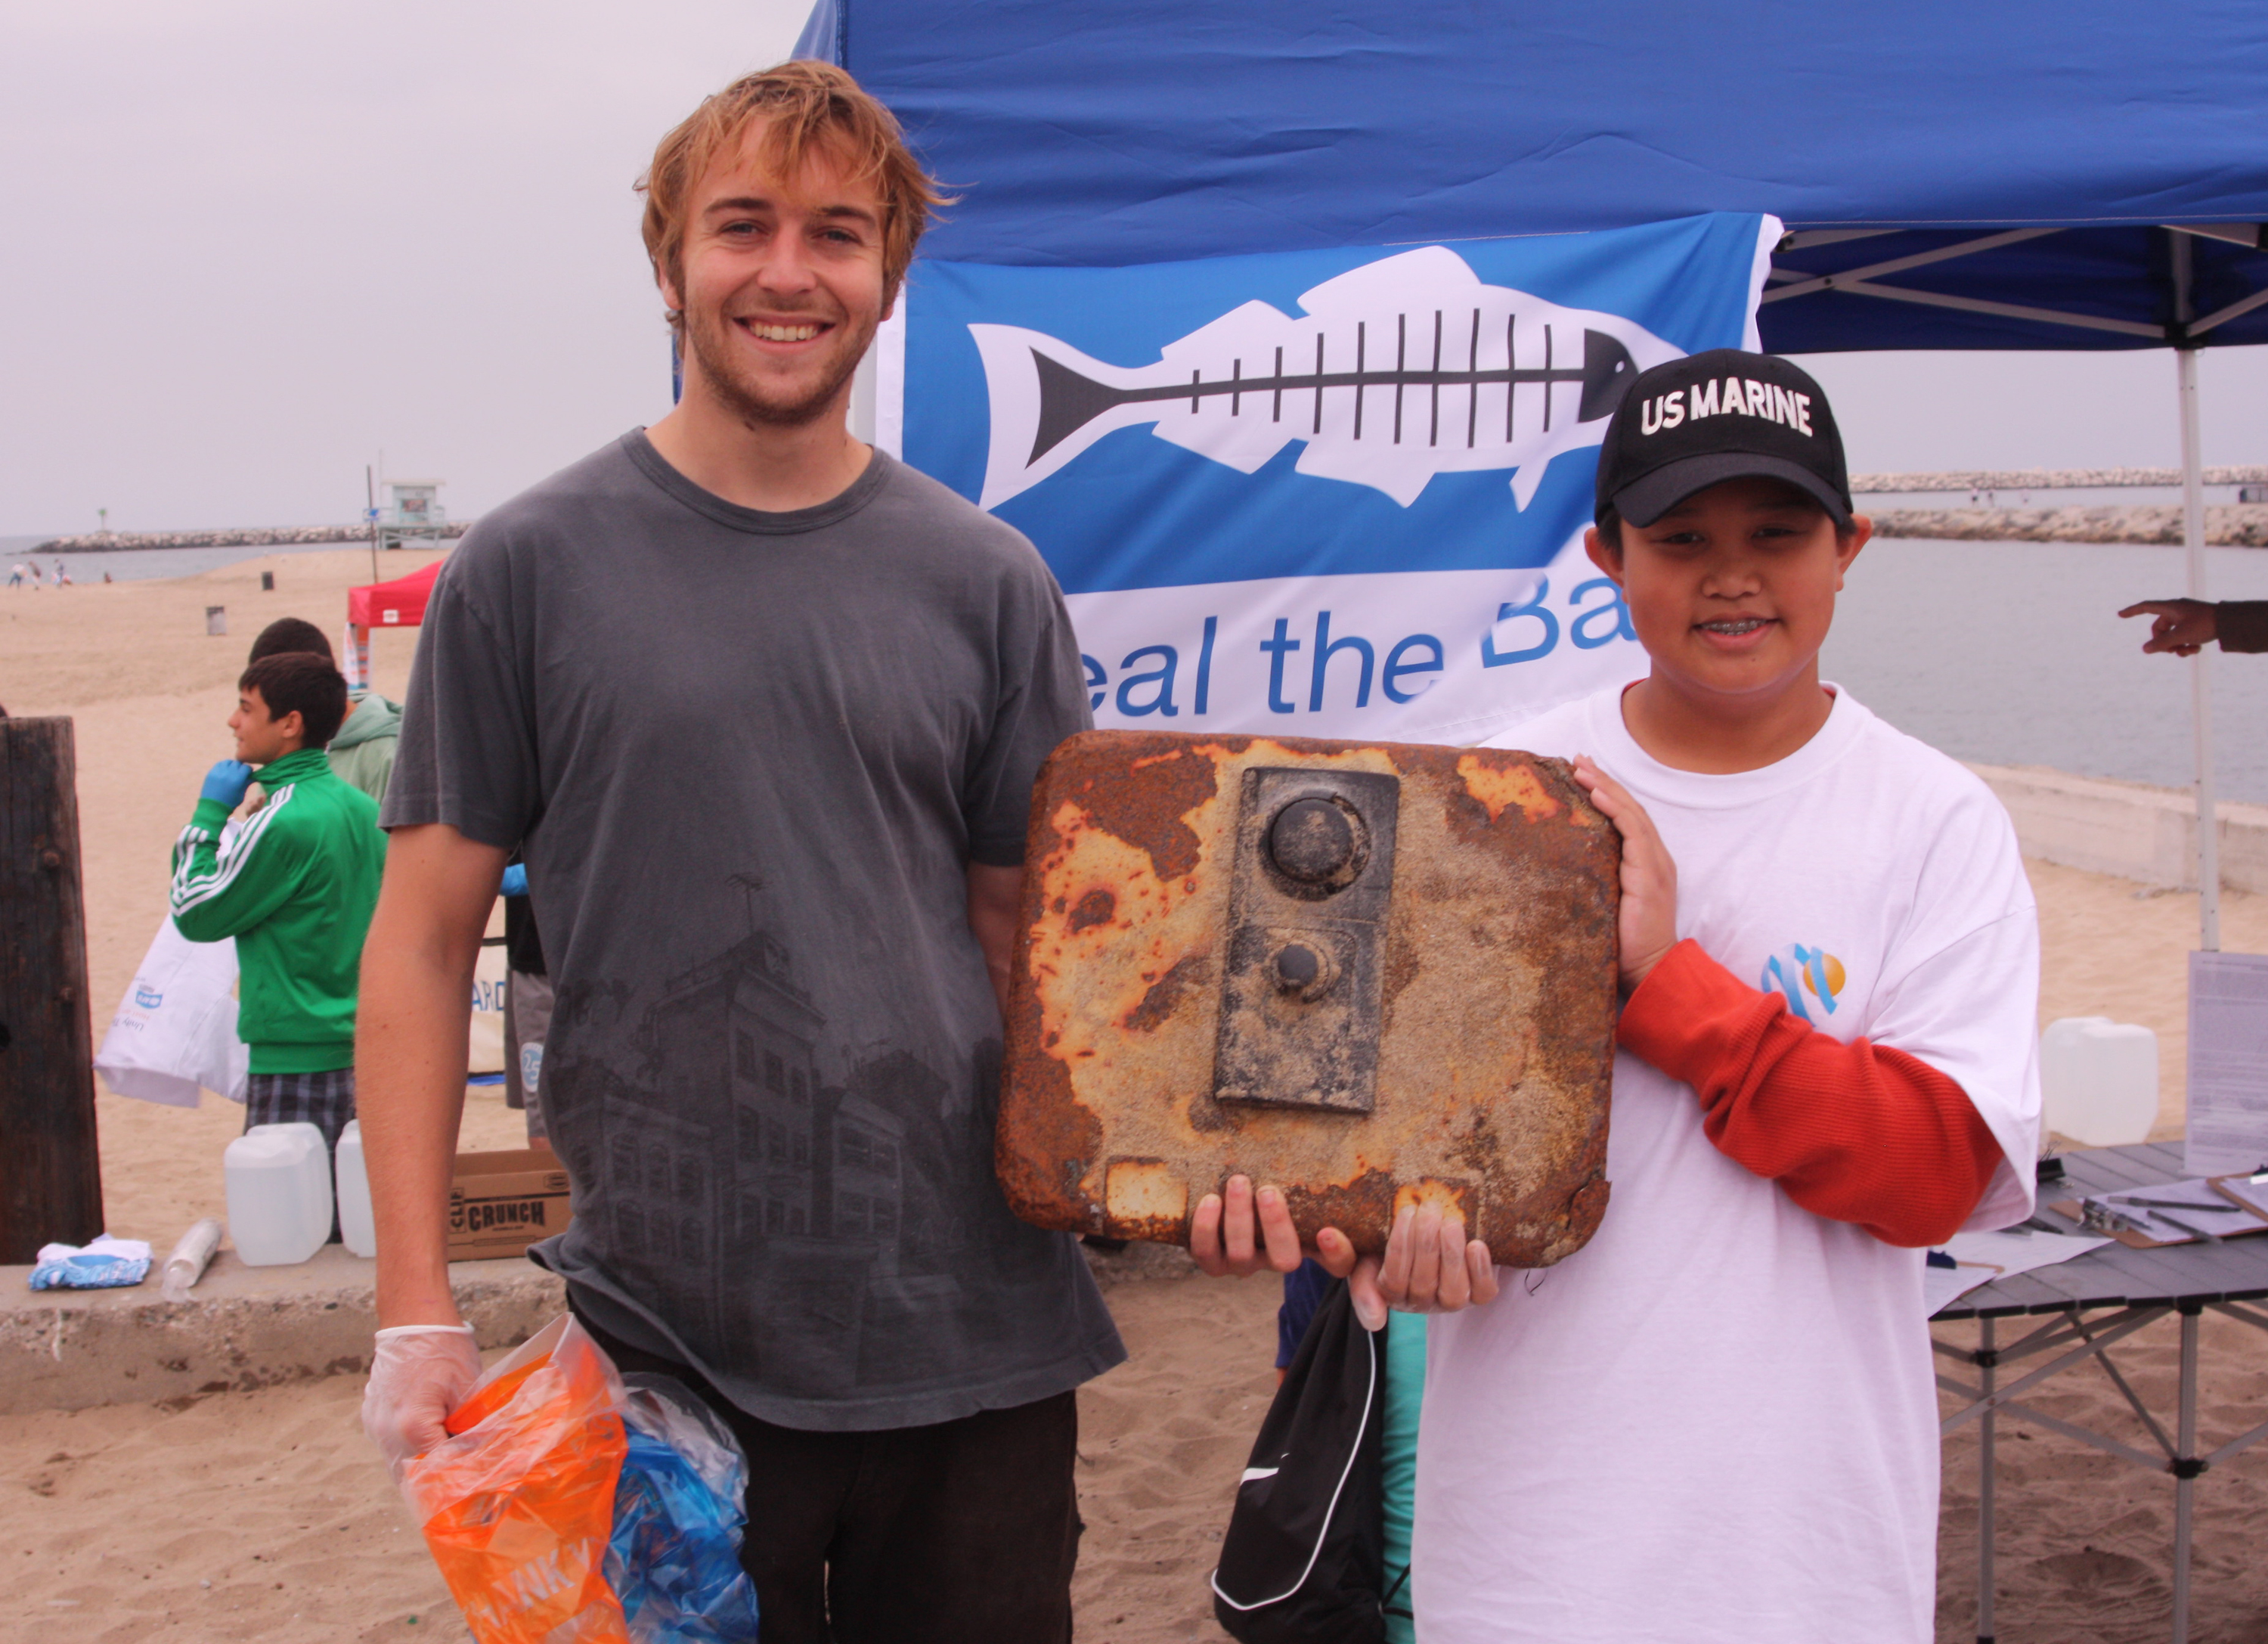 Volunteers at Playa found a safe door at the beach cleanup